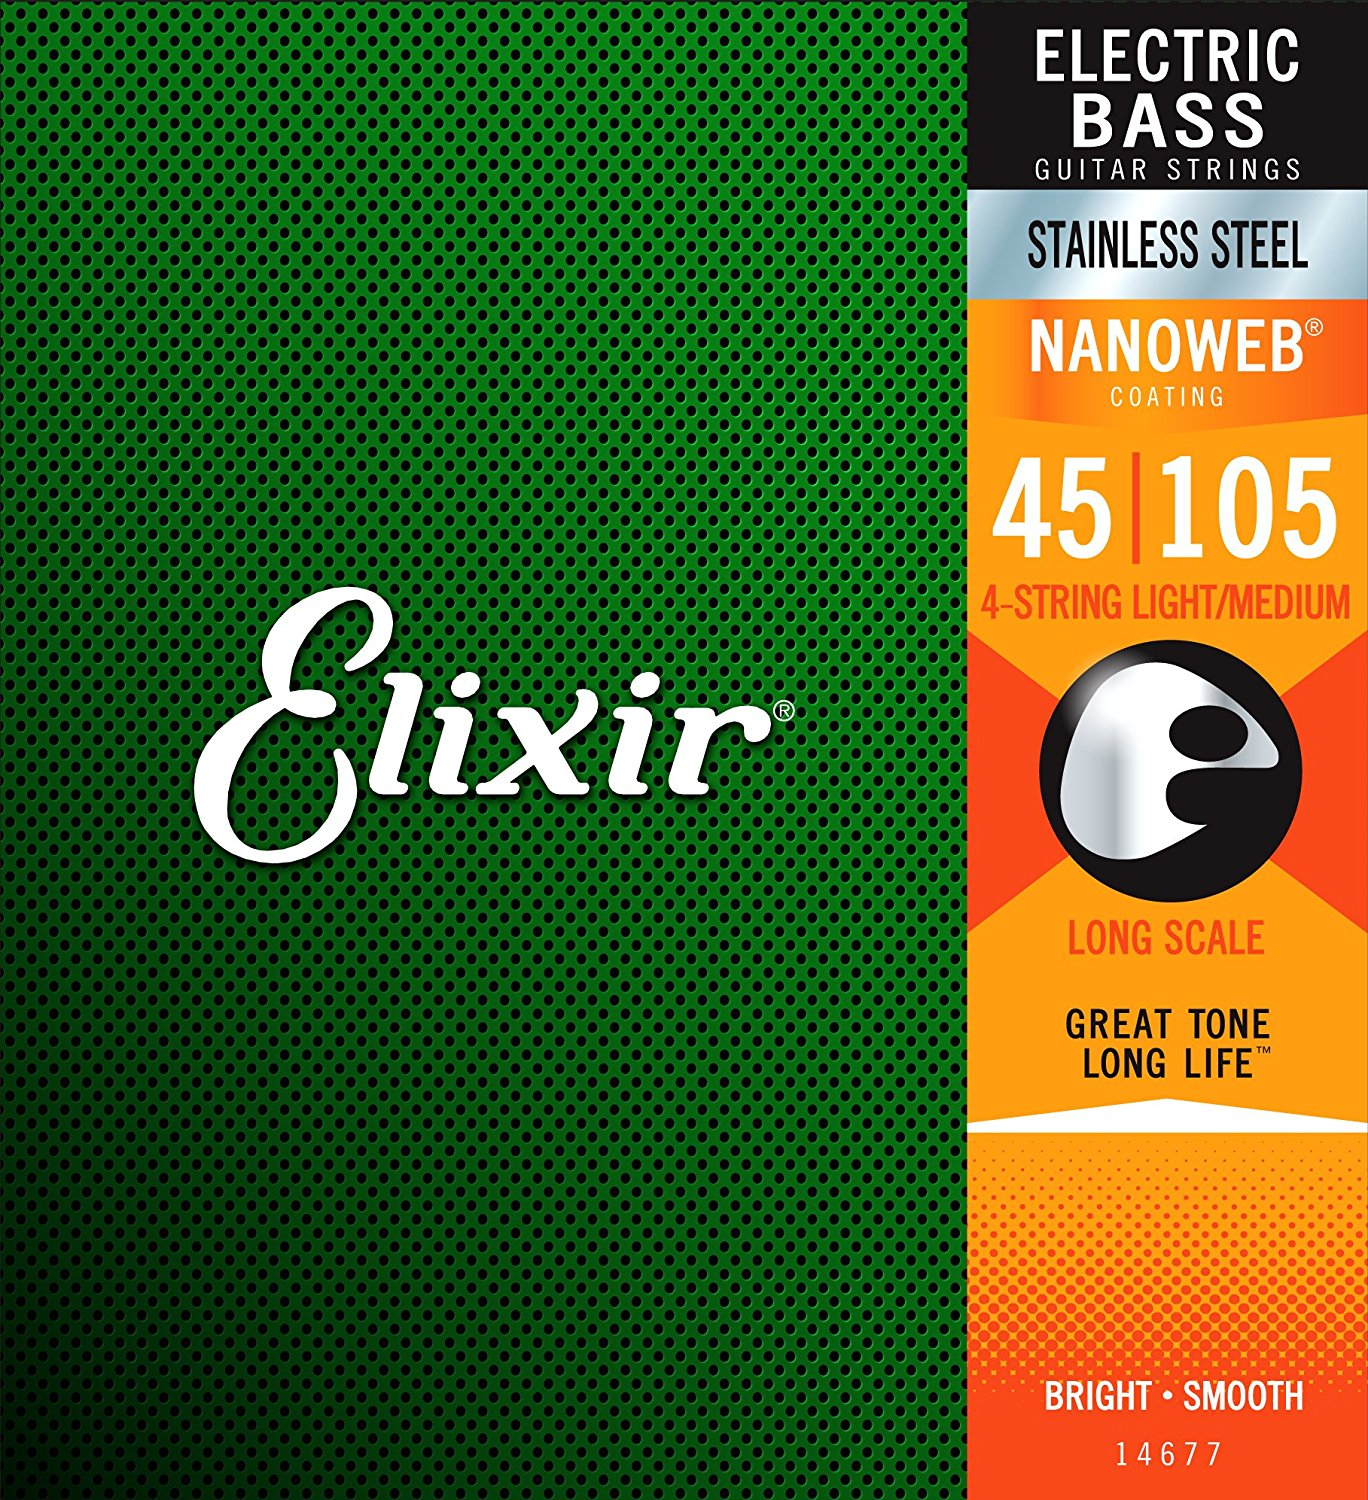 Elixir Strings 14677 Stainless Steel 4-String Bass Strings with NANOWEB Coating, Long Scale, Light/Medium (.045-.105) rotosound rs66lh bass strings stainless steel